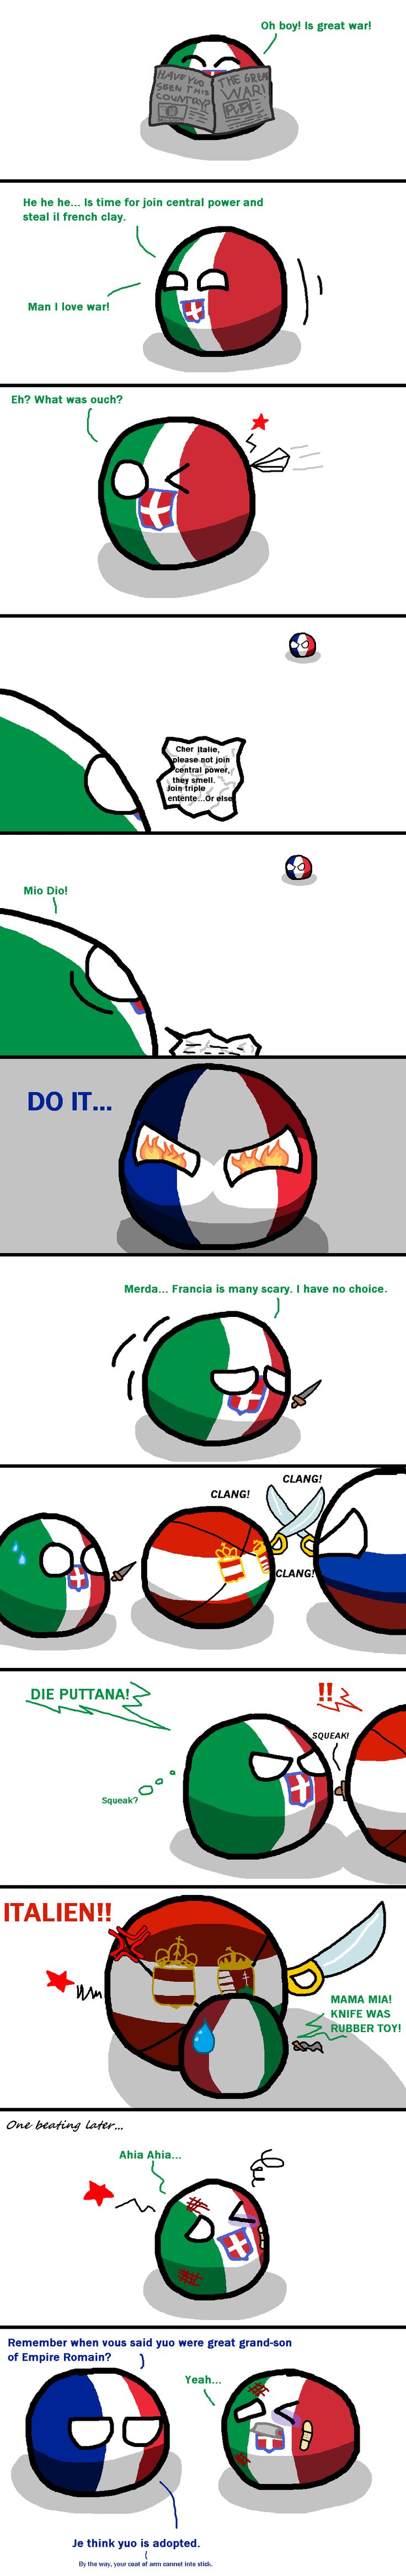 WW1: Kingdom of Italy in a nutshell - Je think yuo were adopted.